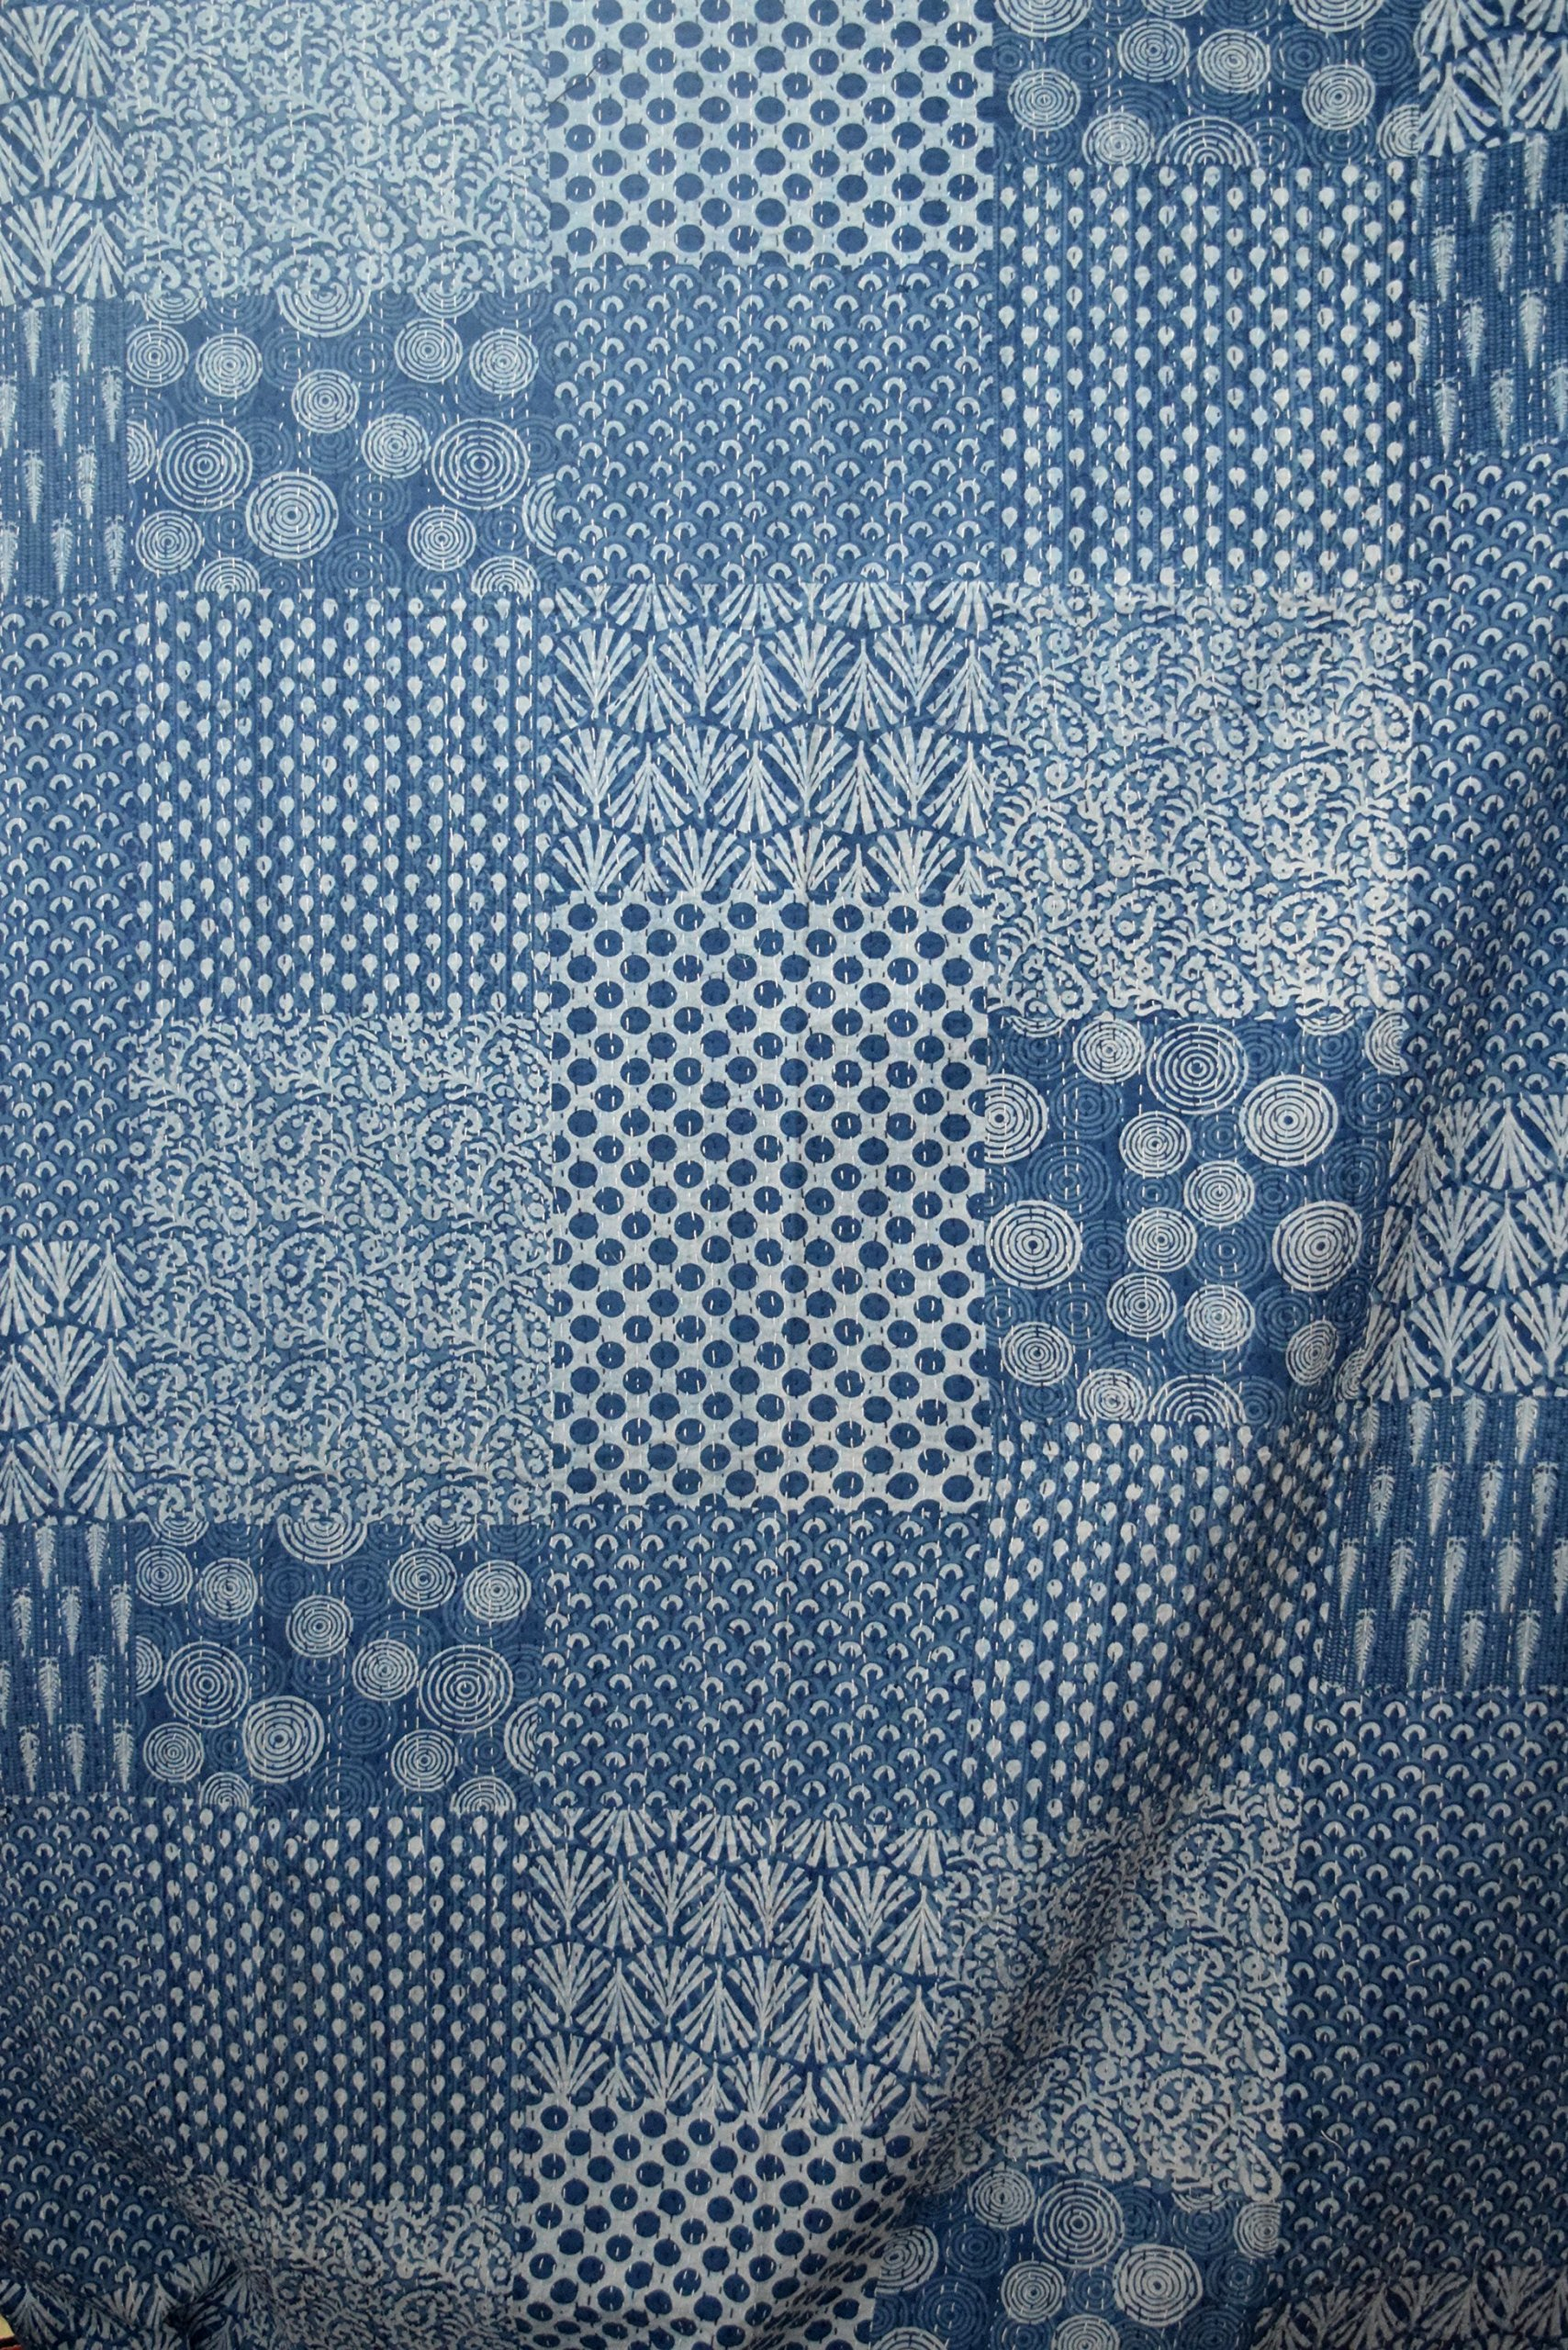 Hand Block Print Bedcover Twin Size Blue Indigo Kantha Quilt Indigo Print Bedcover Indian Kantha Quilt Block Print Bedcover Patchwork Kantha Bedcover kusum creation by kusum creation (Image #3)